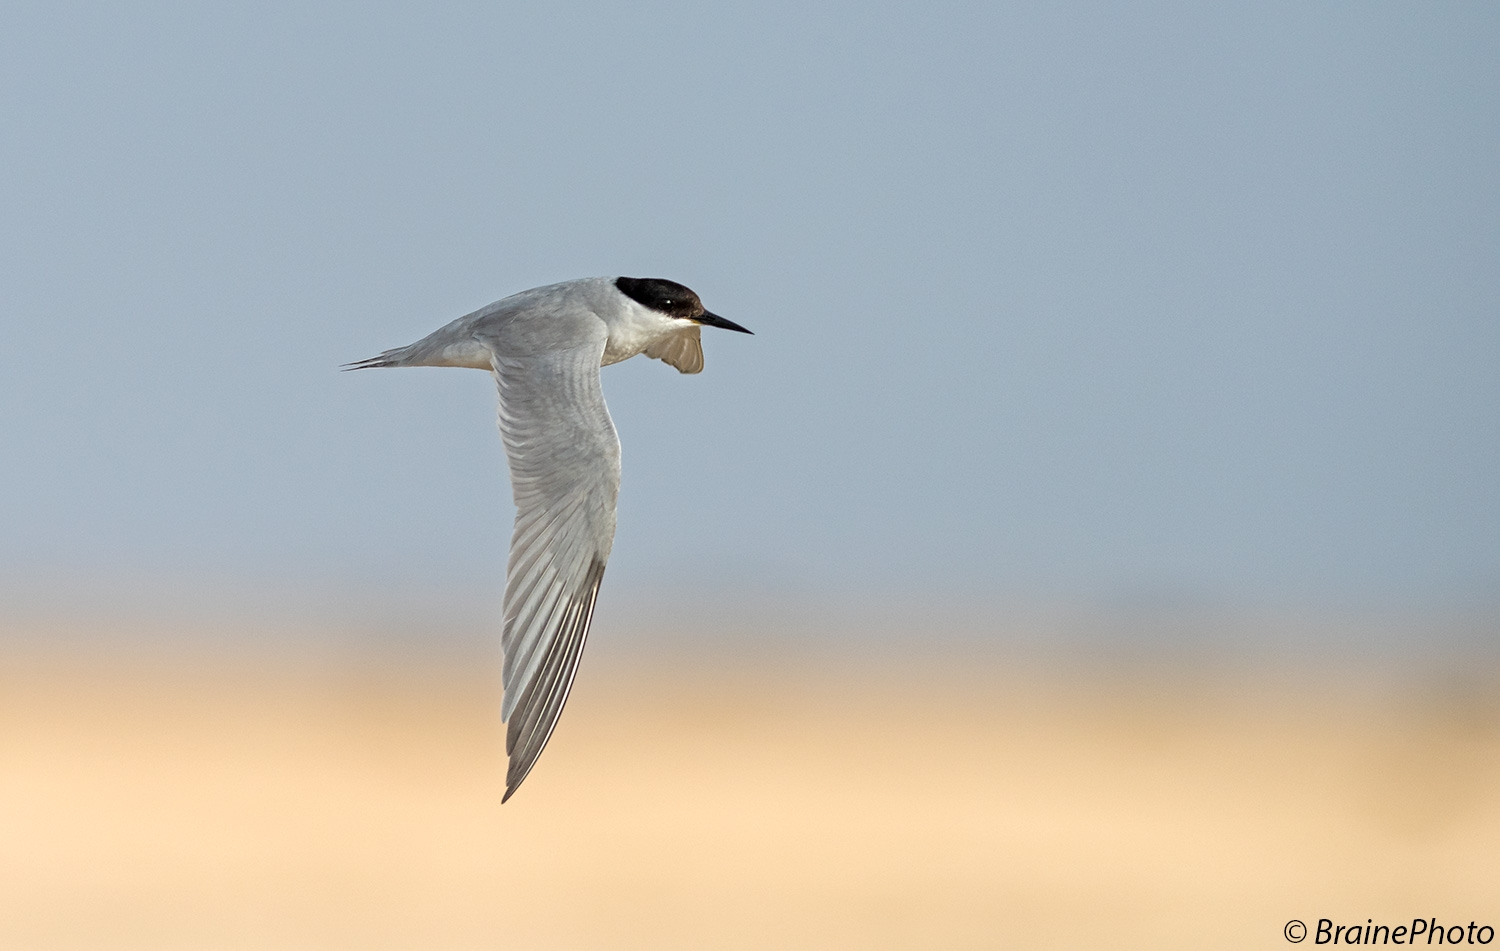 Our Namibia birding tours and desert birding day tours offer many desert specials, such as the Damara Tern which breeds on Namibia's gravel plains between September and April.